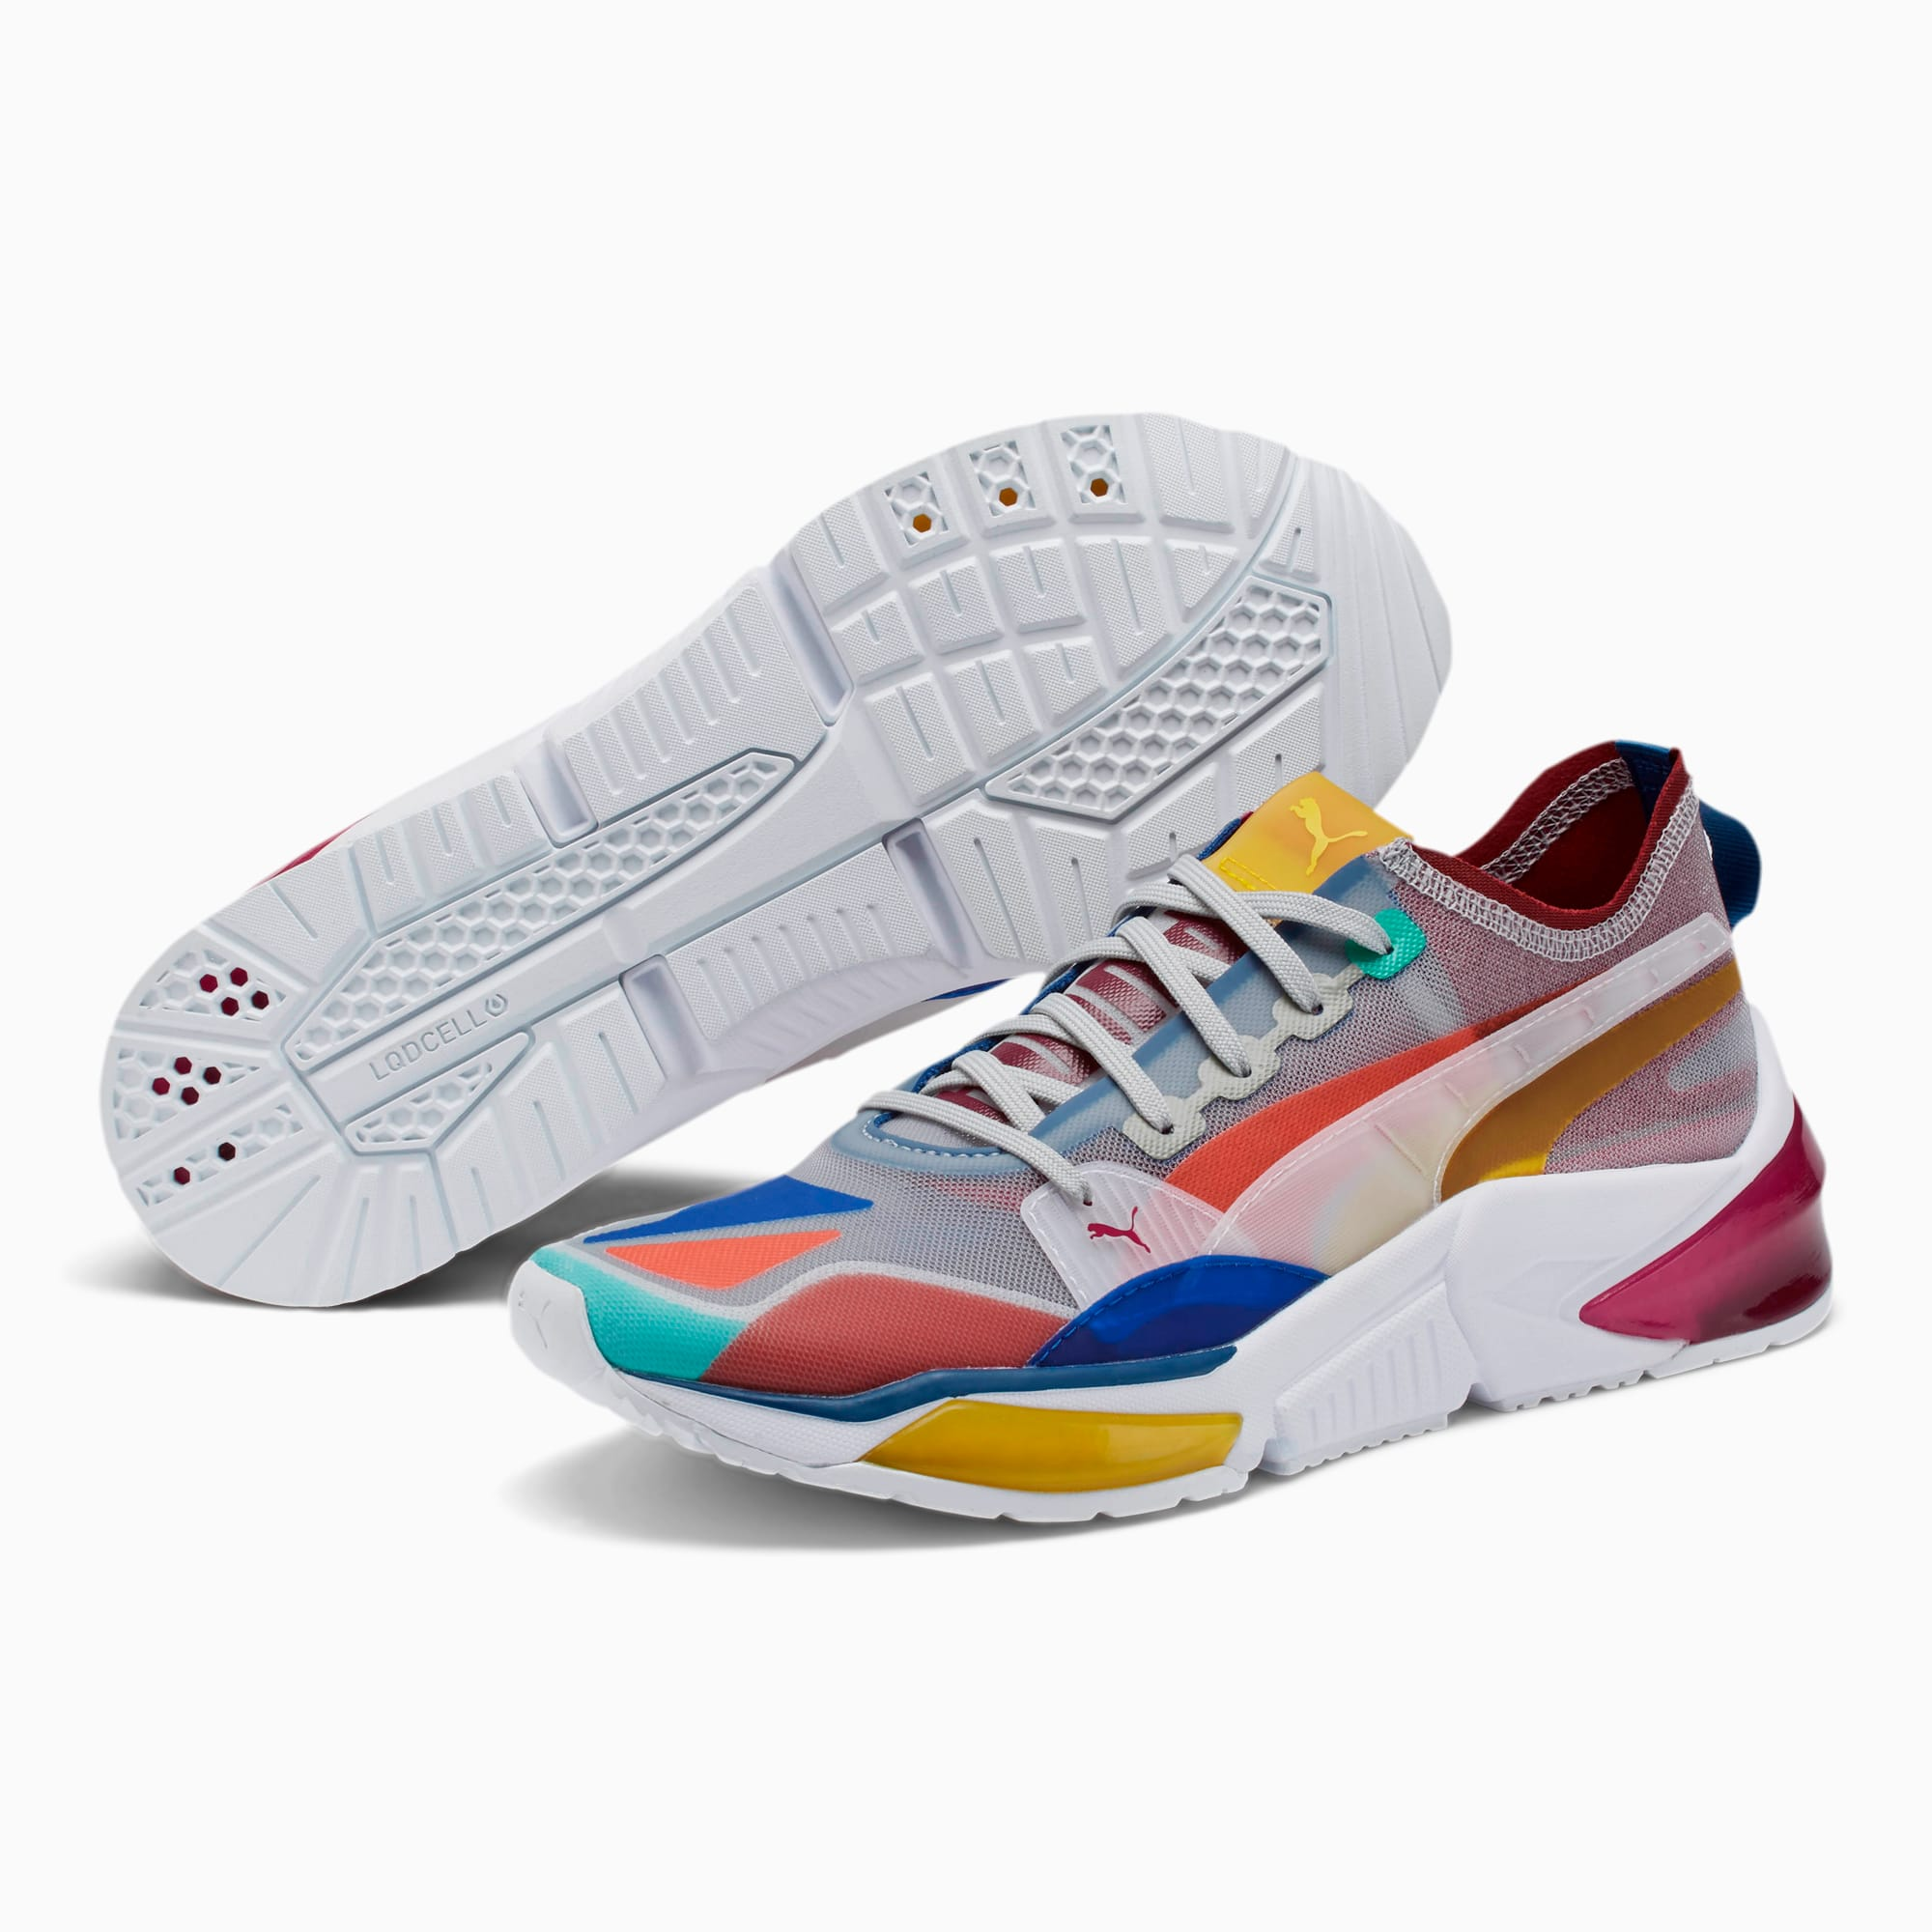 New PUMA Lqdcell Optic Sheer Womens Shoes Sneakers Multi White Volt  5.5 to 11